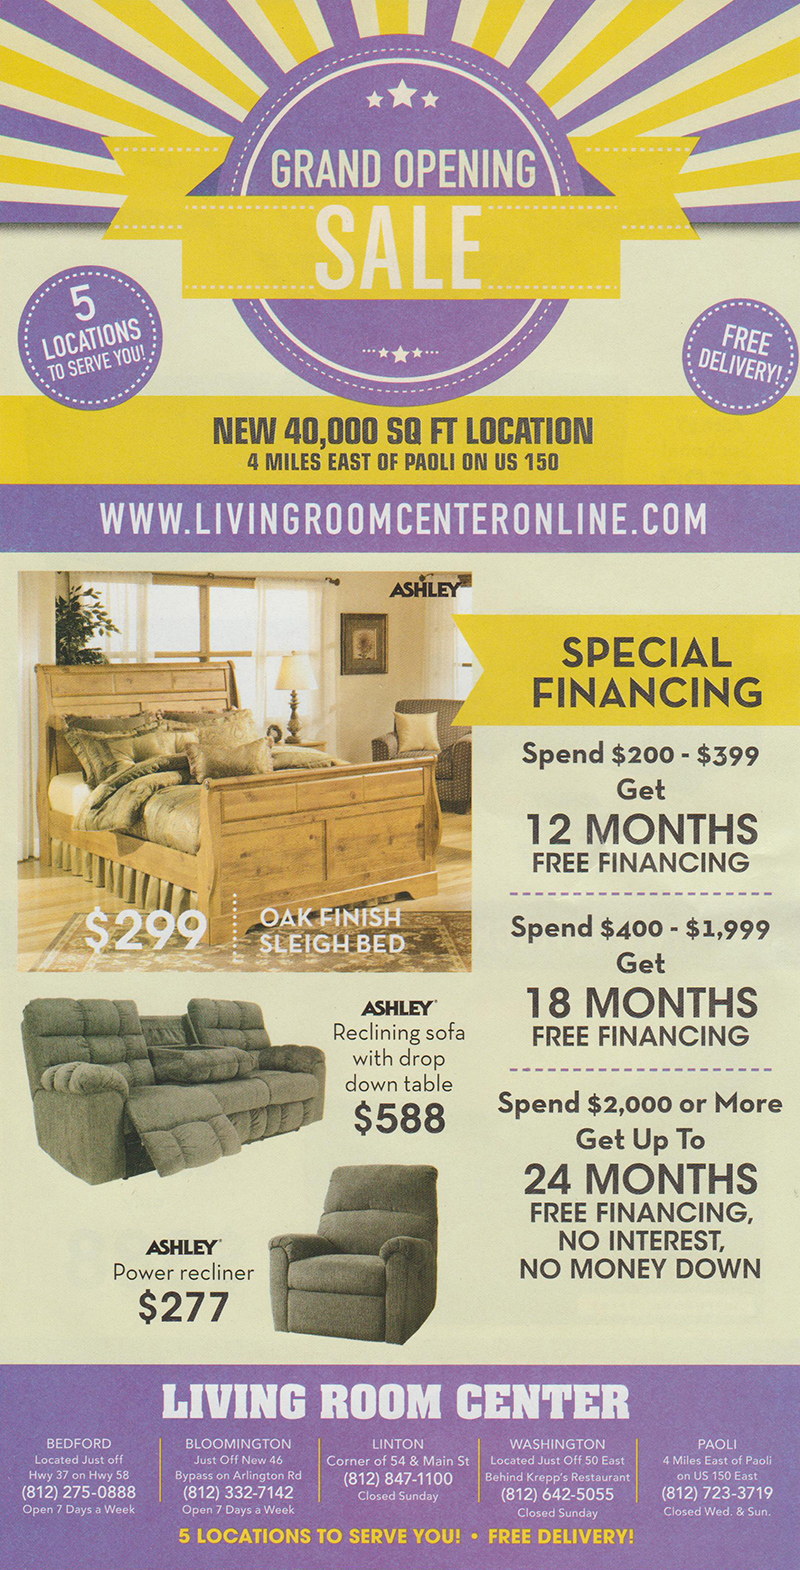 The Living Room Center Linton Indiana